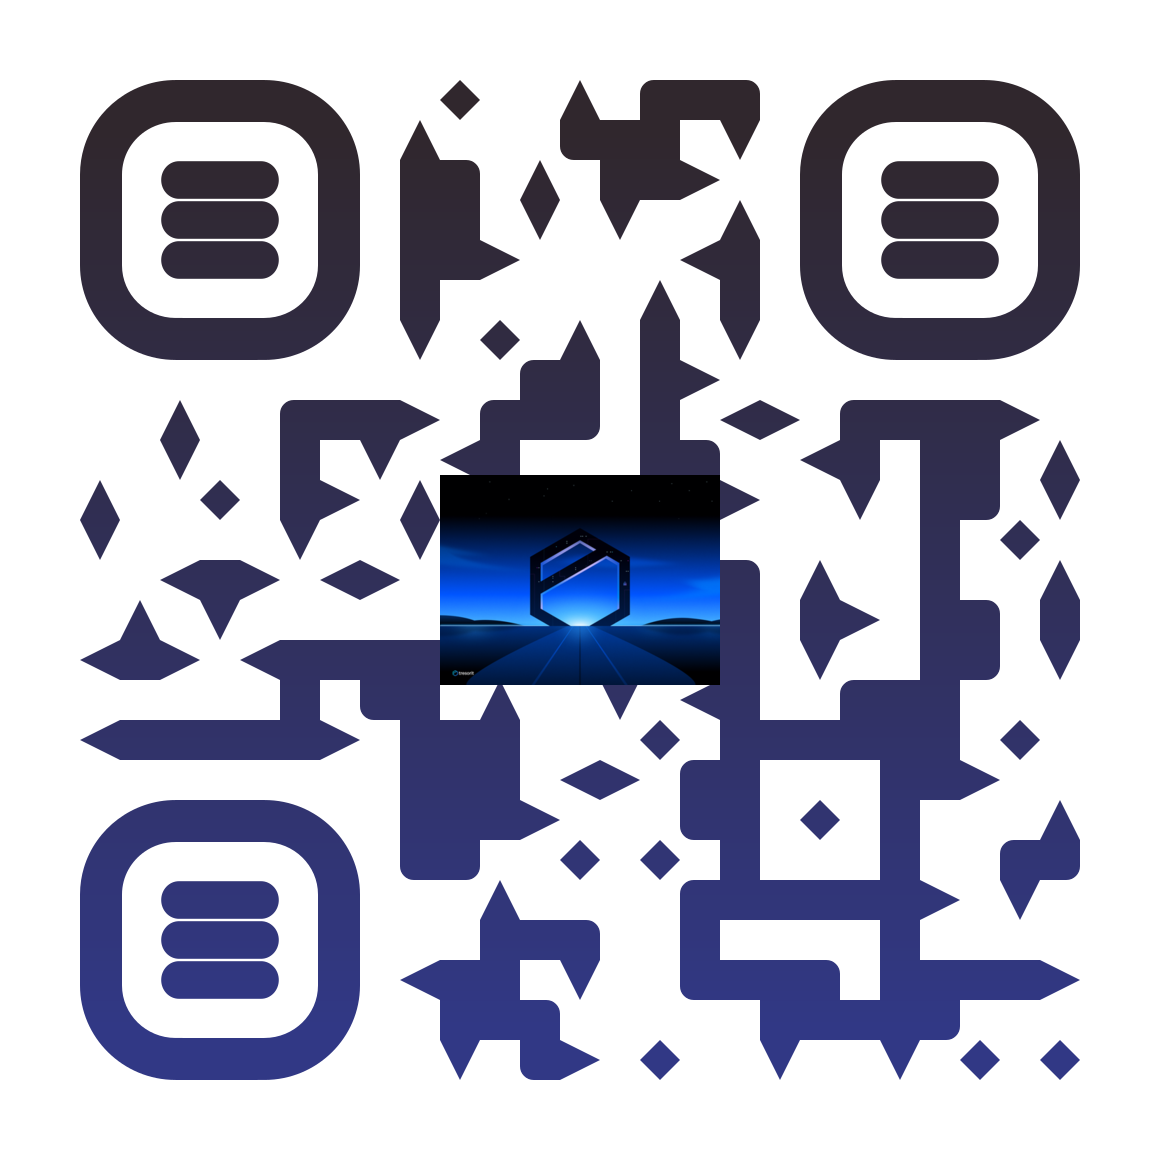 I Will Design And Create Product Text Business And Others World-Class Qr Code